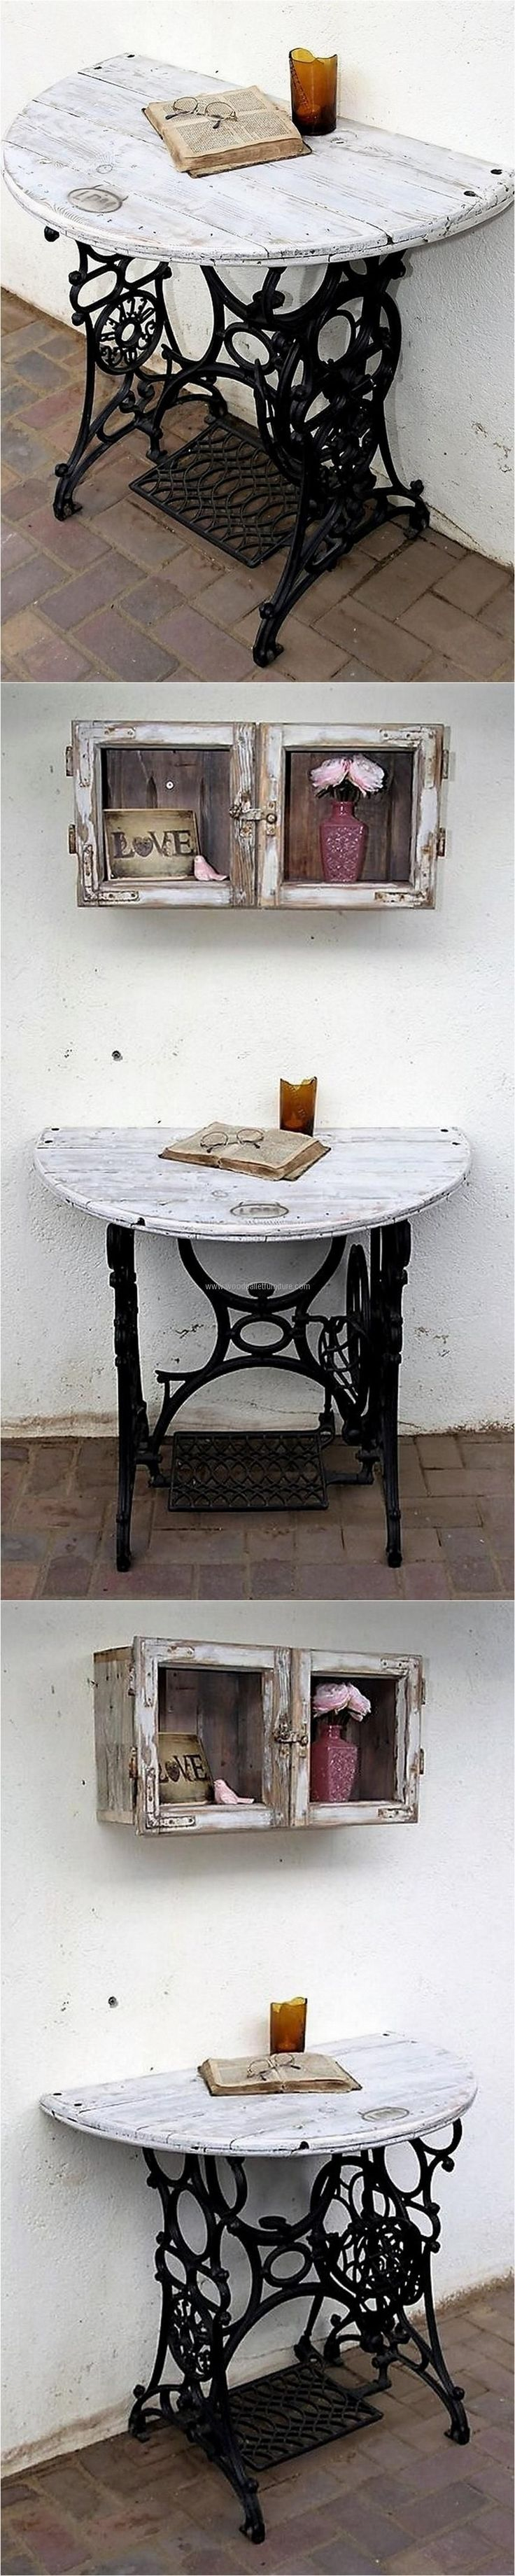 This half entryway table idea with the ready-made base by Lucie's Palettenmöbel is amazing for the reading lovers. It can be placed in an empty area of the home to make it look nice.